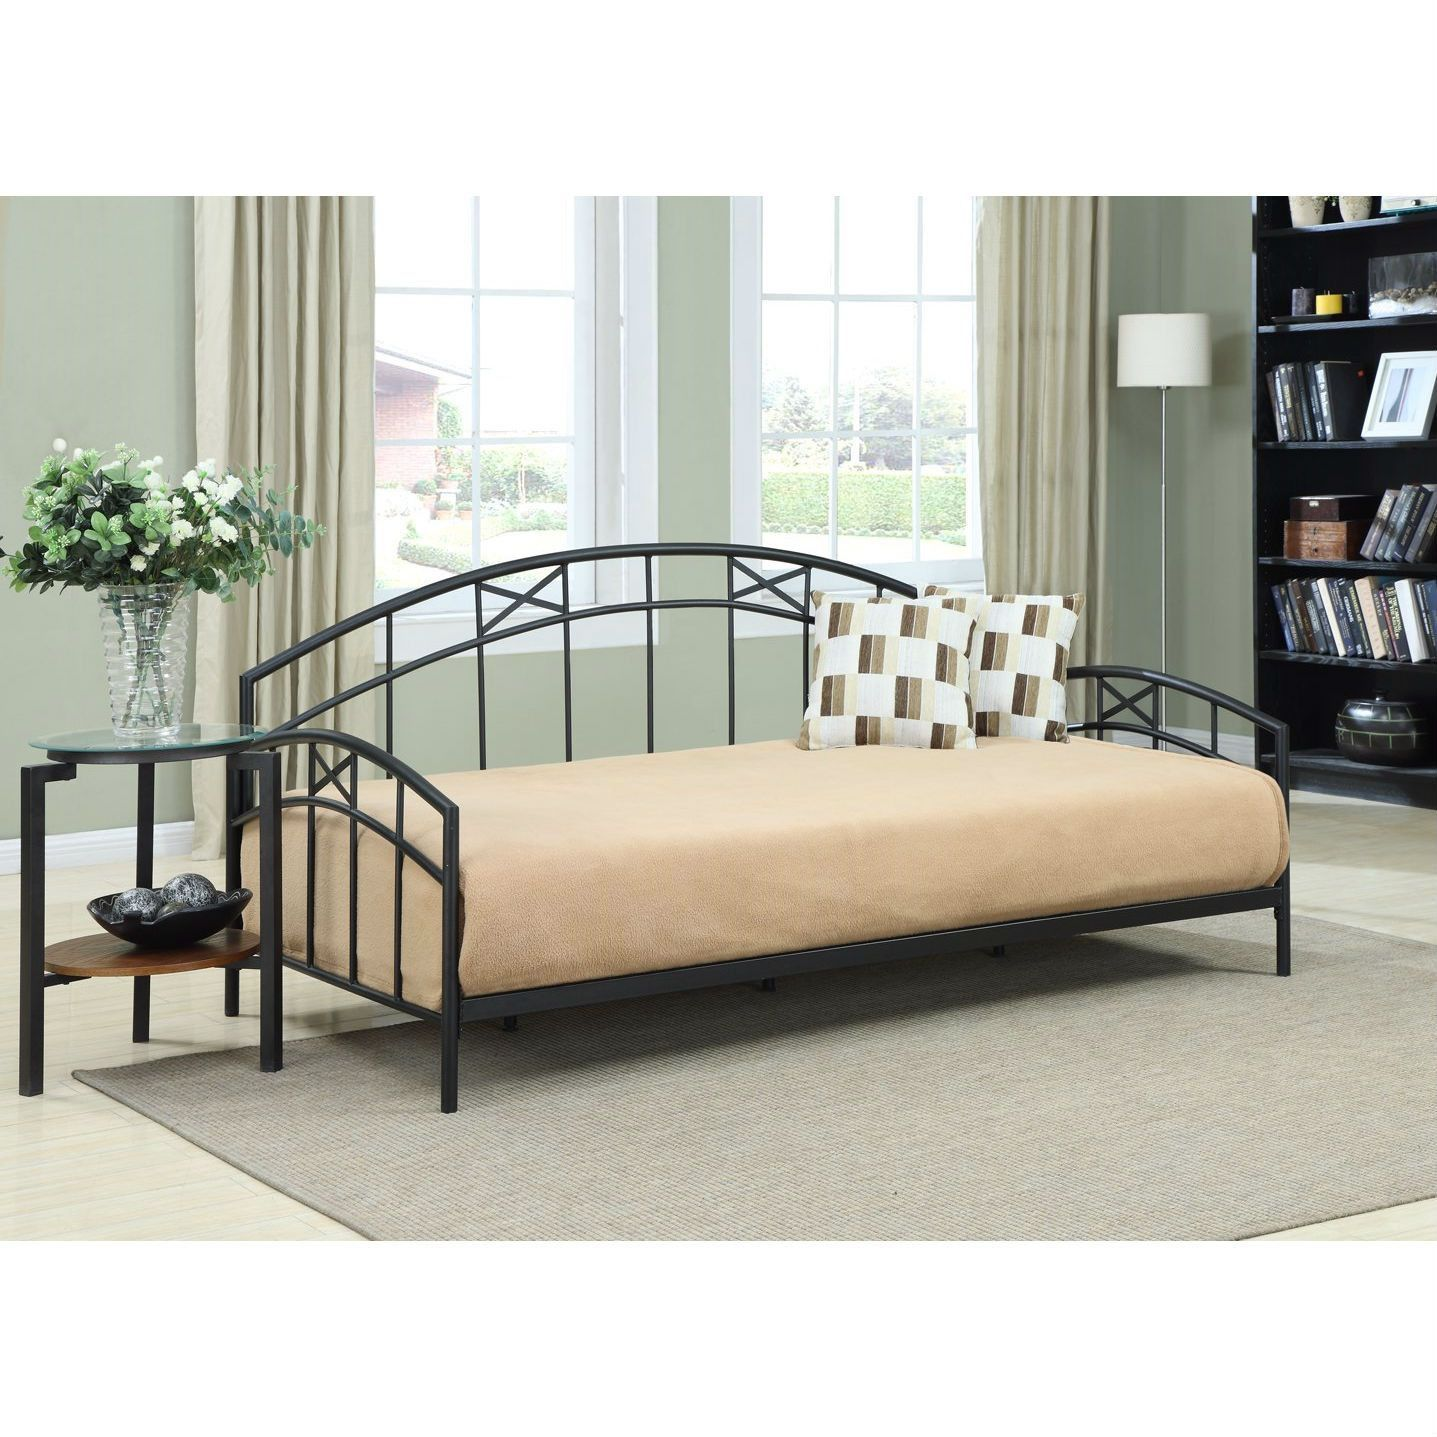 Twin size Black Metal Daybed Frame with Decorative Rails